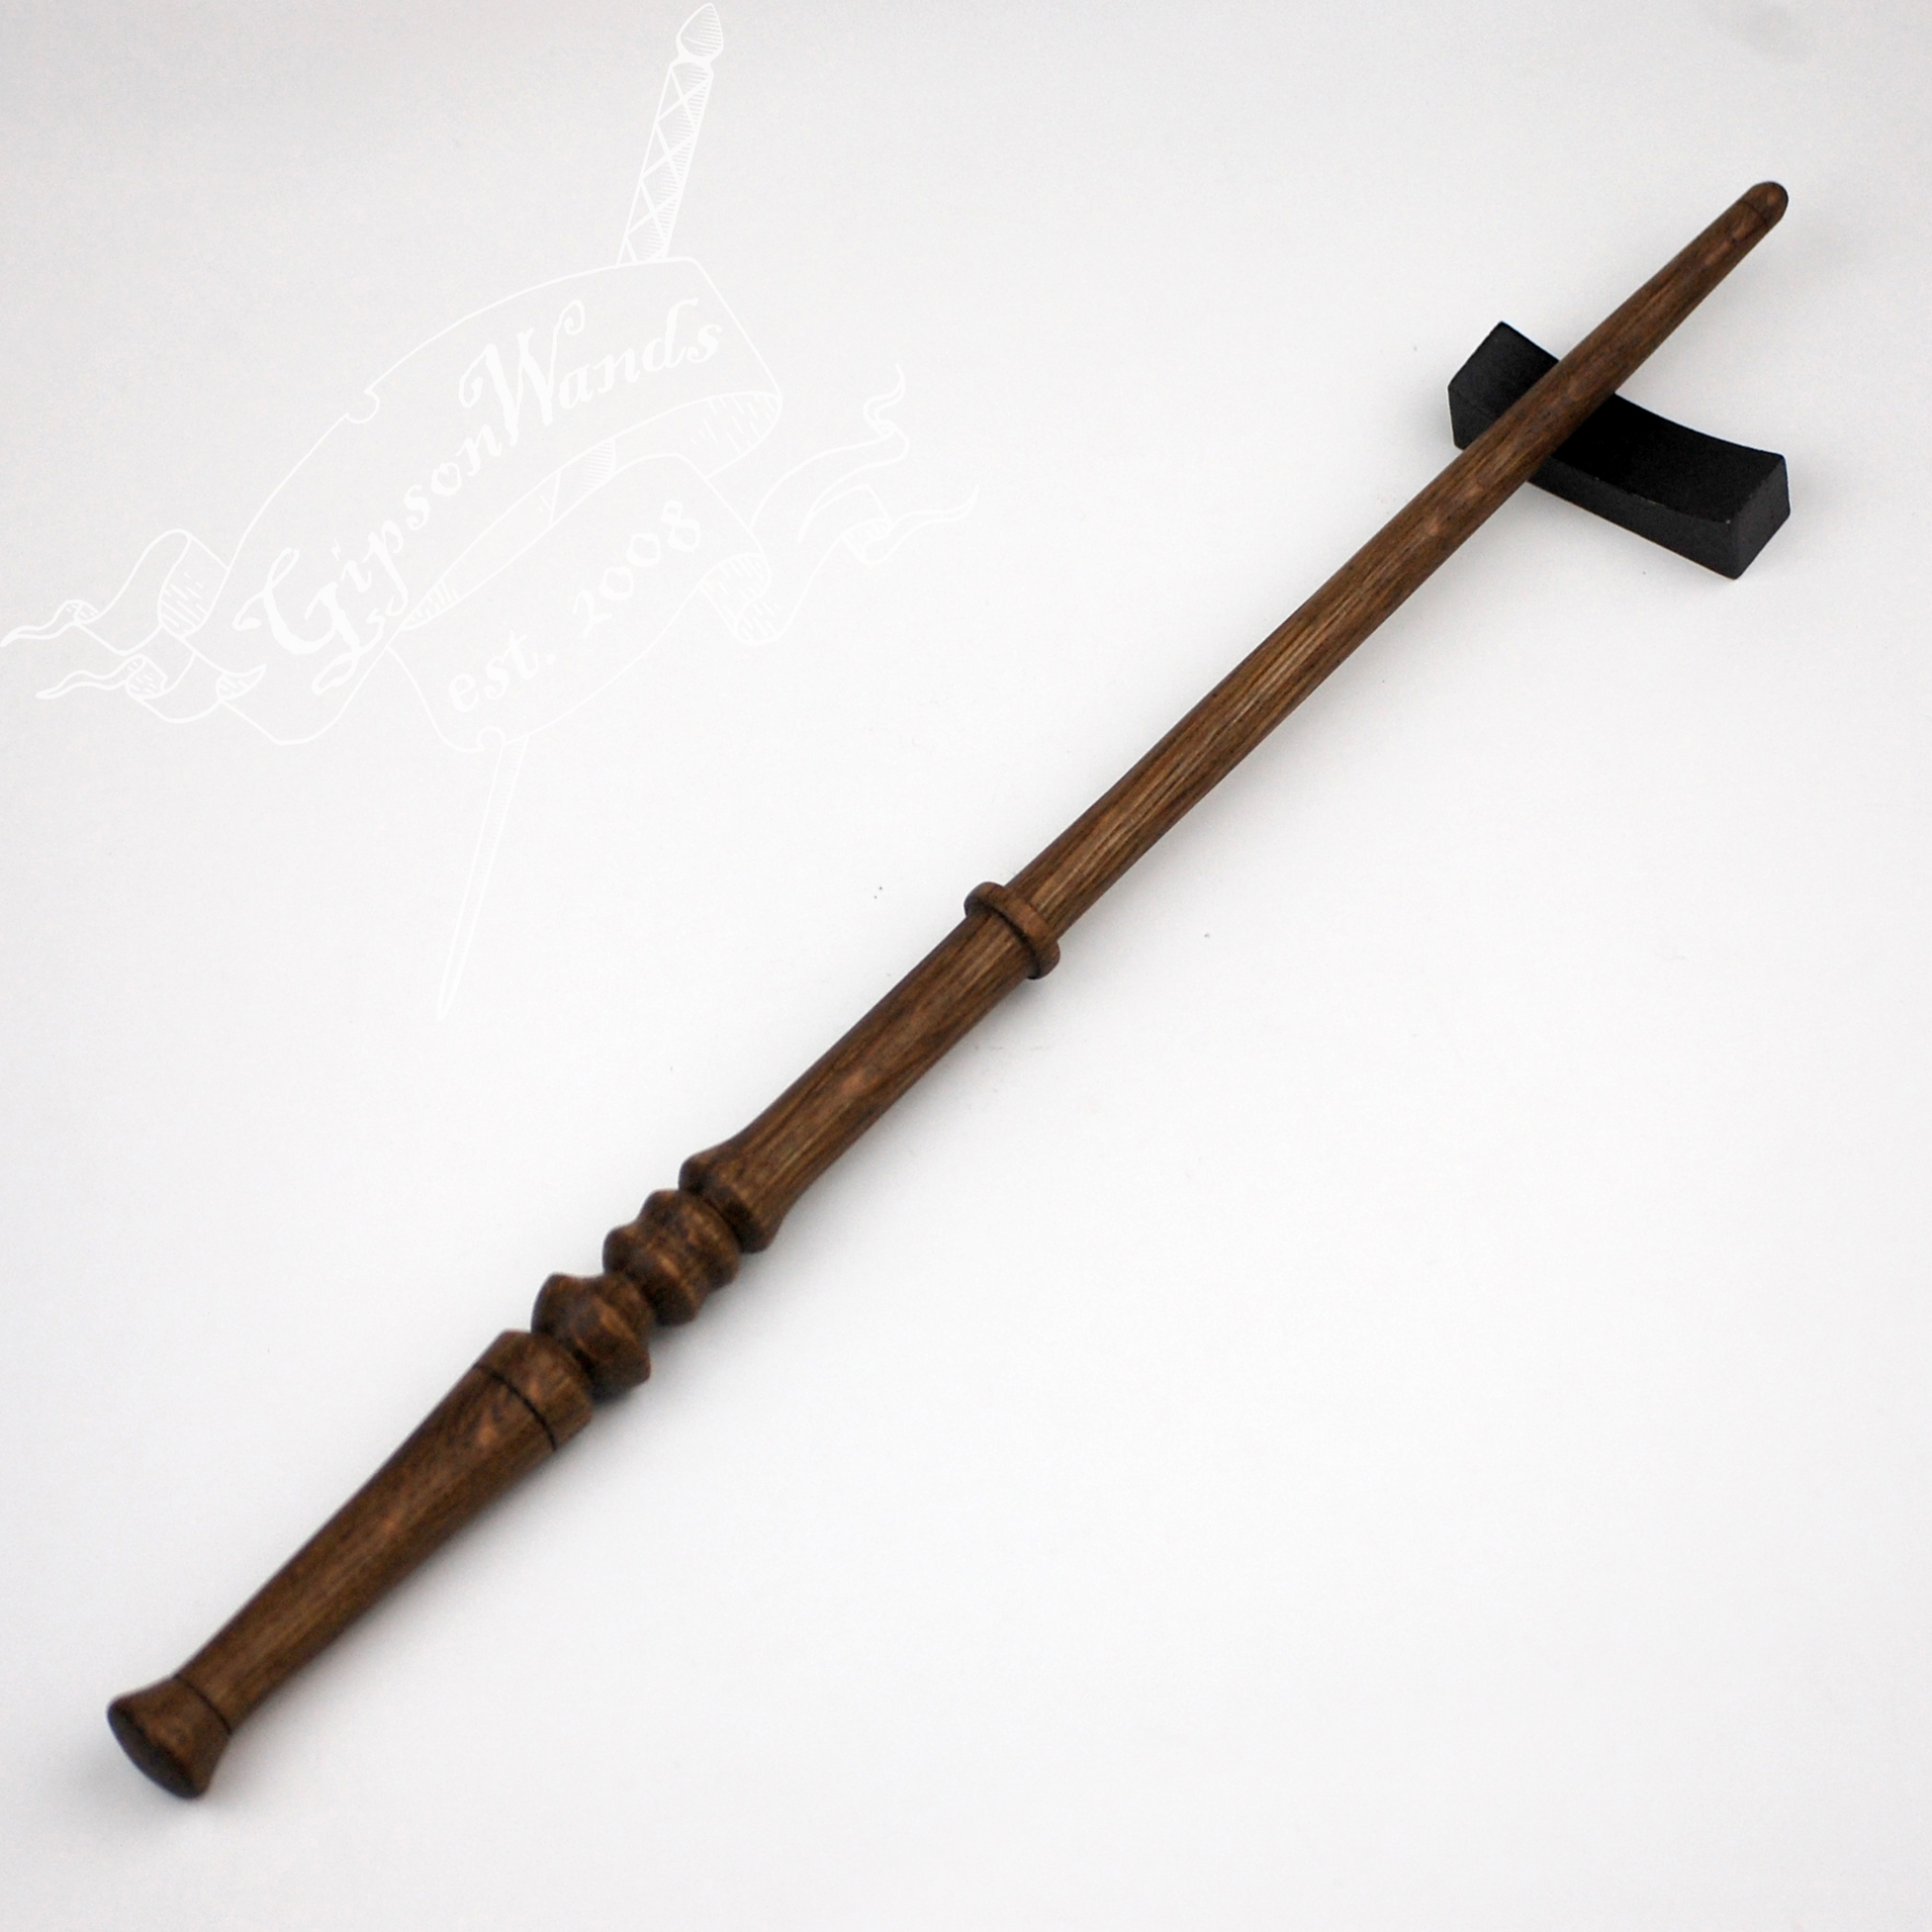 Fumed white oak wand 12 3 4th inch gipsonwands online for 4 wand filmproduktion